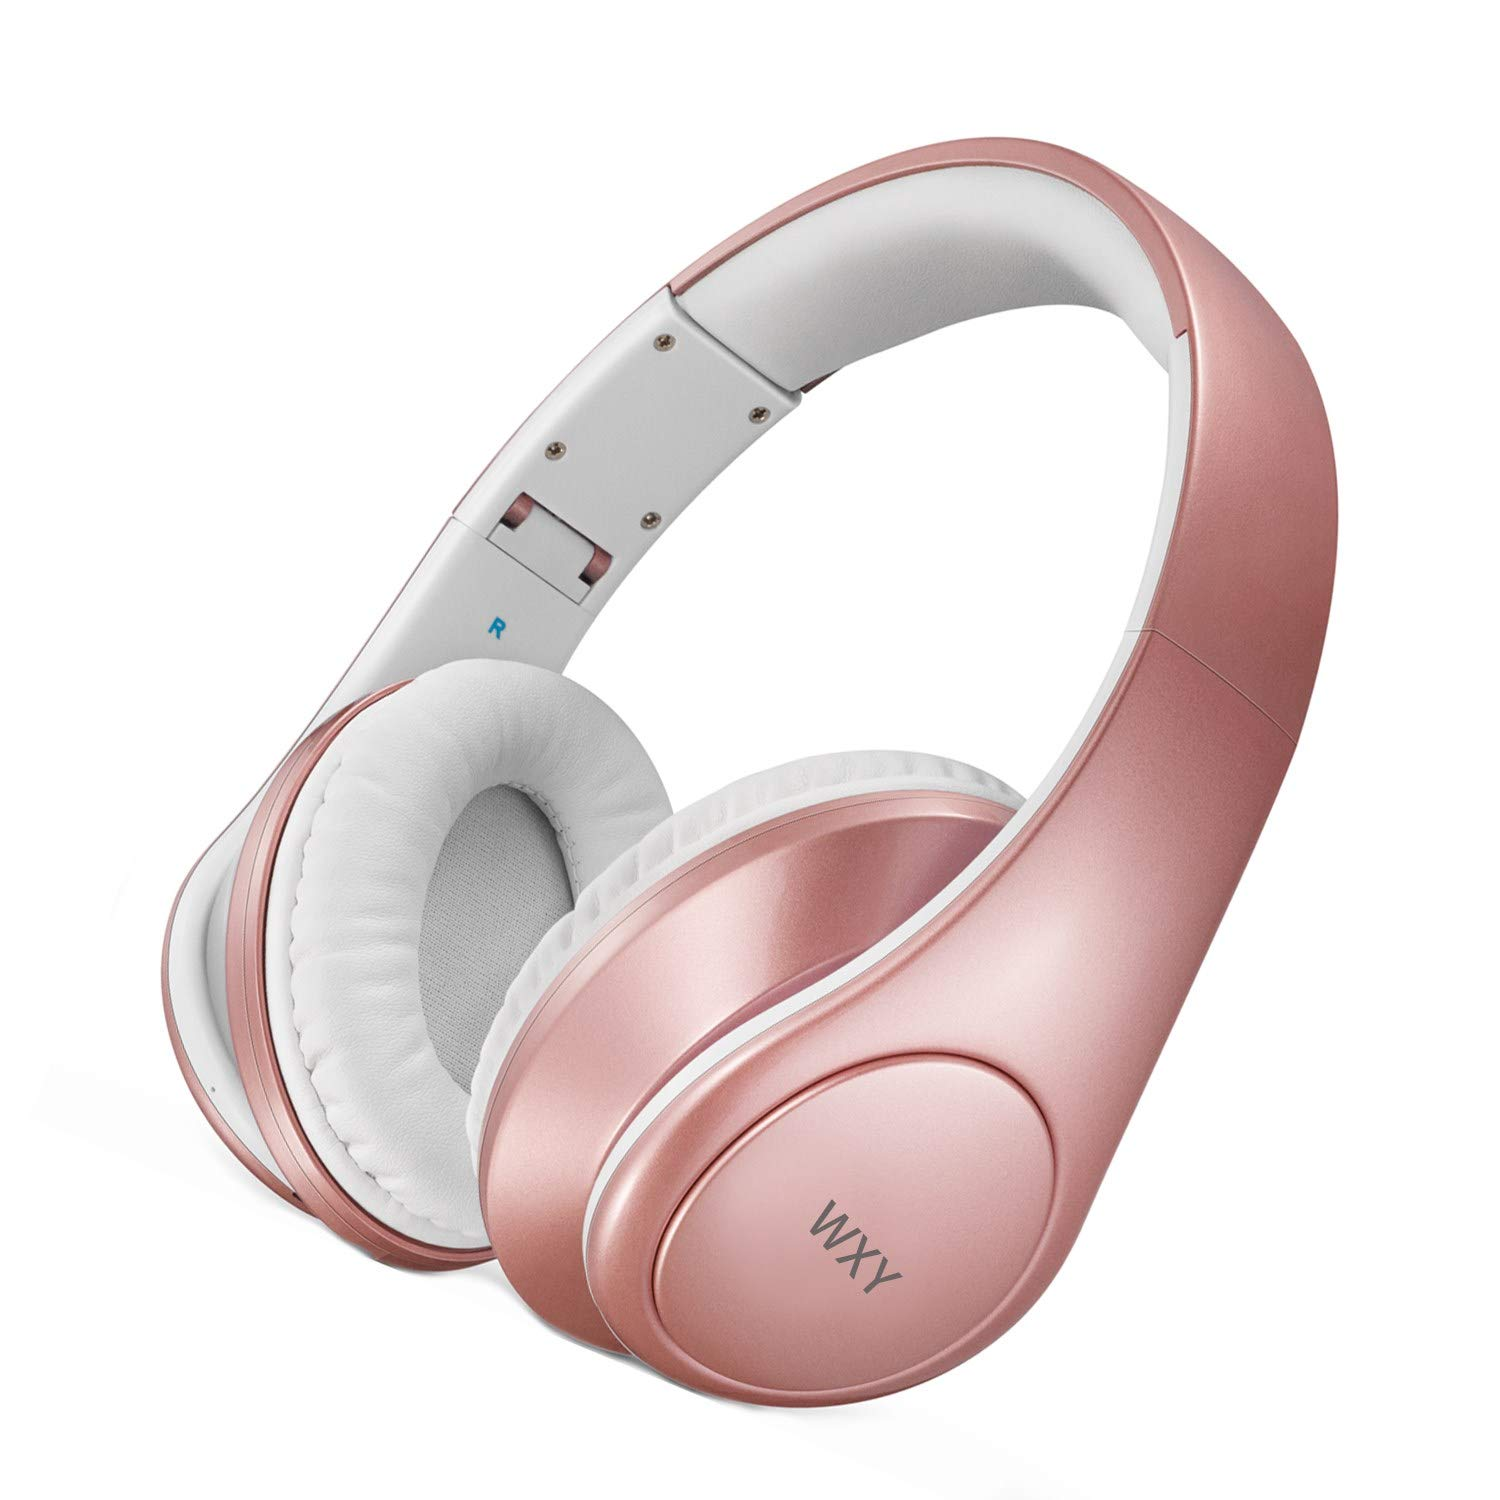 Wireless Headphones Wxy Hi Fi Stereo Bluetooth Headphones Over Ear With Built In Mic 25 Hrs Playtime Soft Memory Protein Earmuffs And Foldable For Travel Work Pc Tv Cellphone And Kids Rose Gold